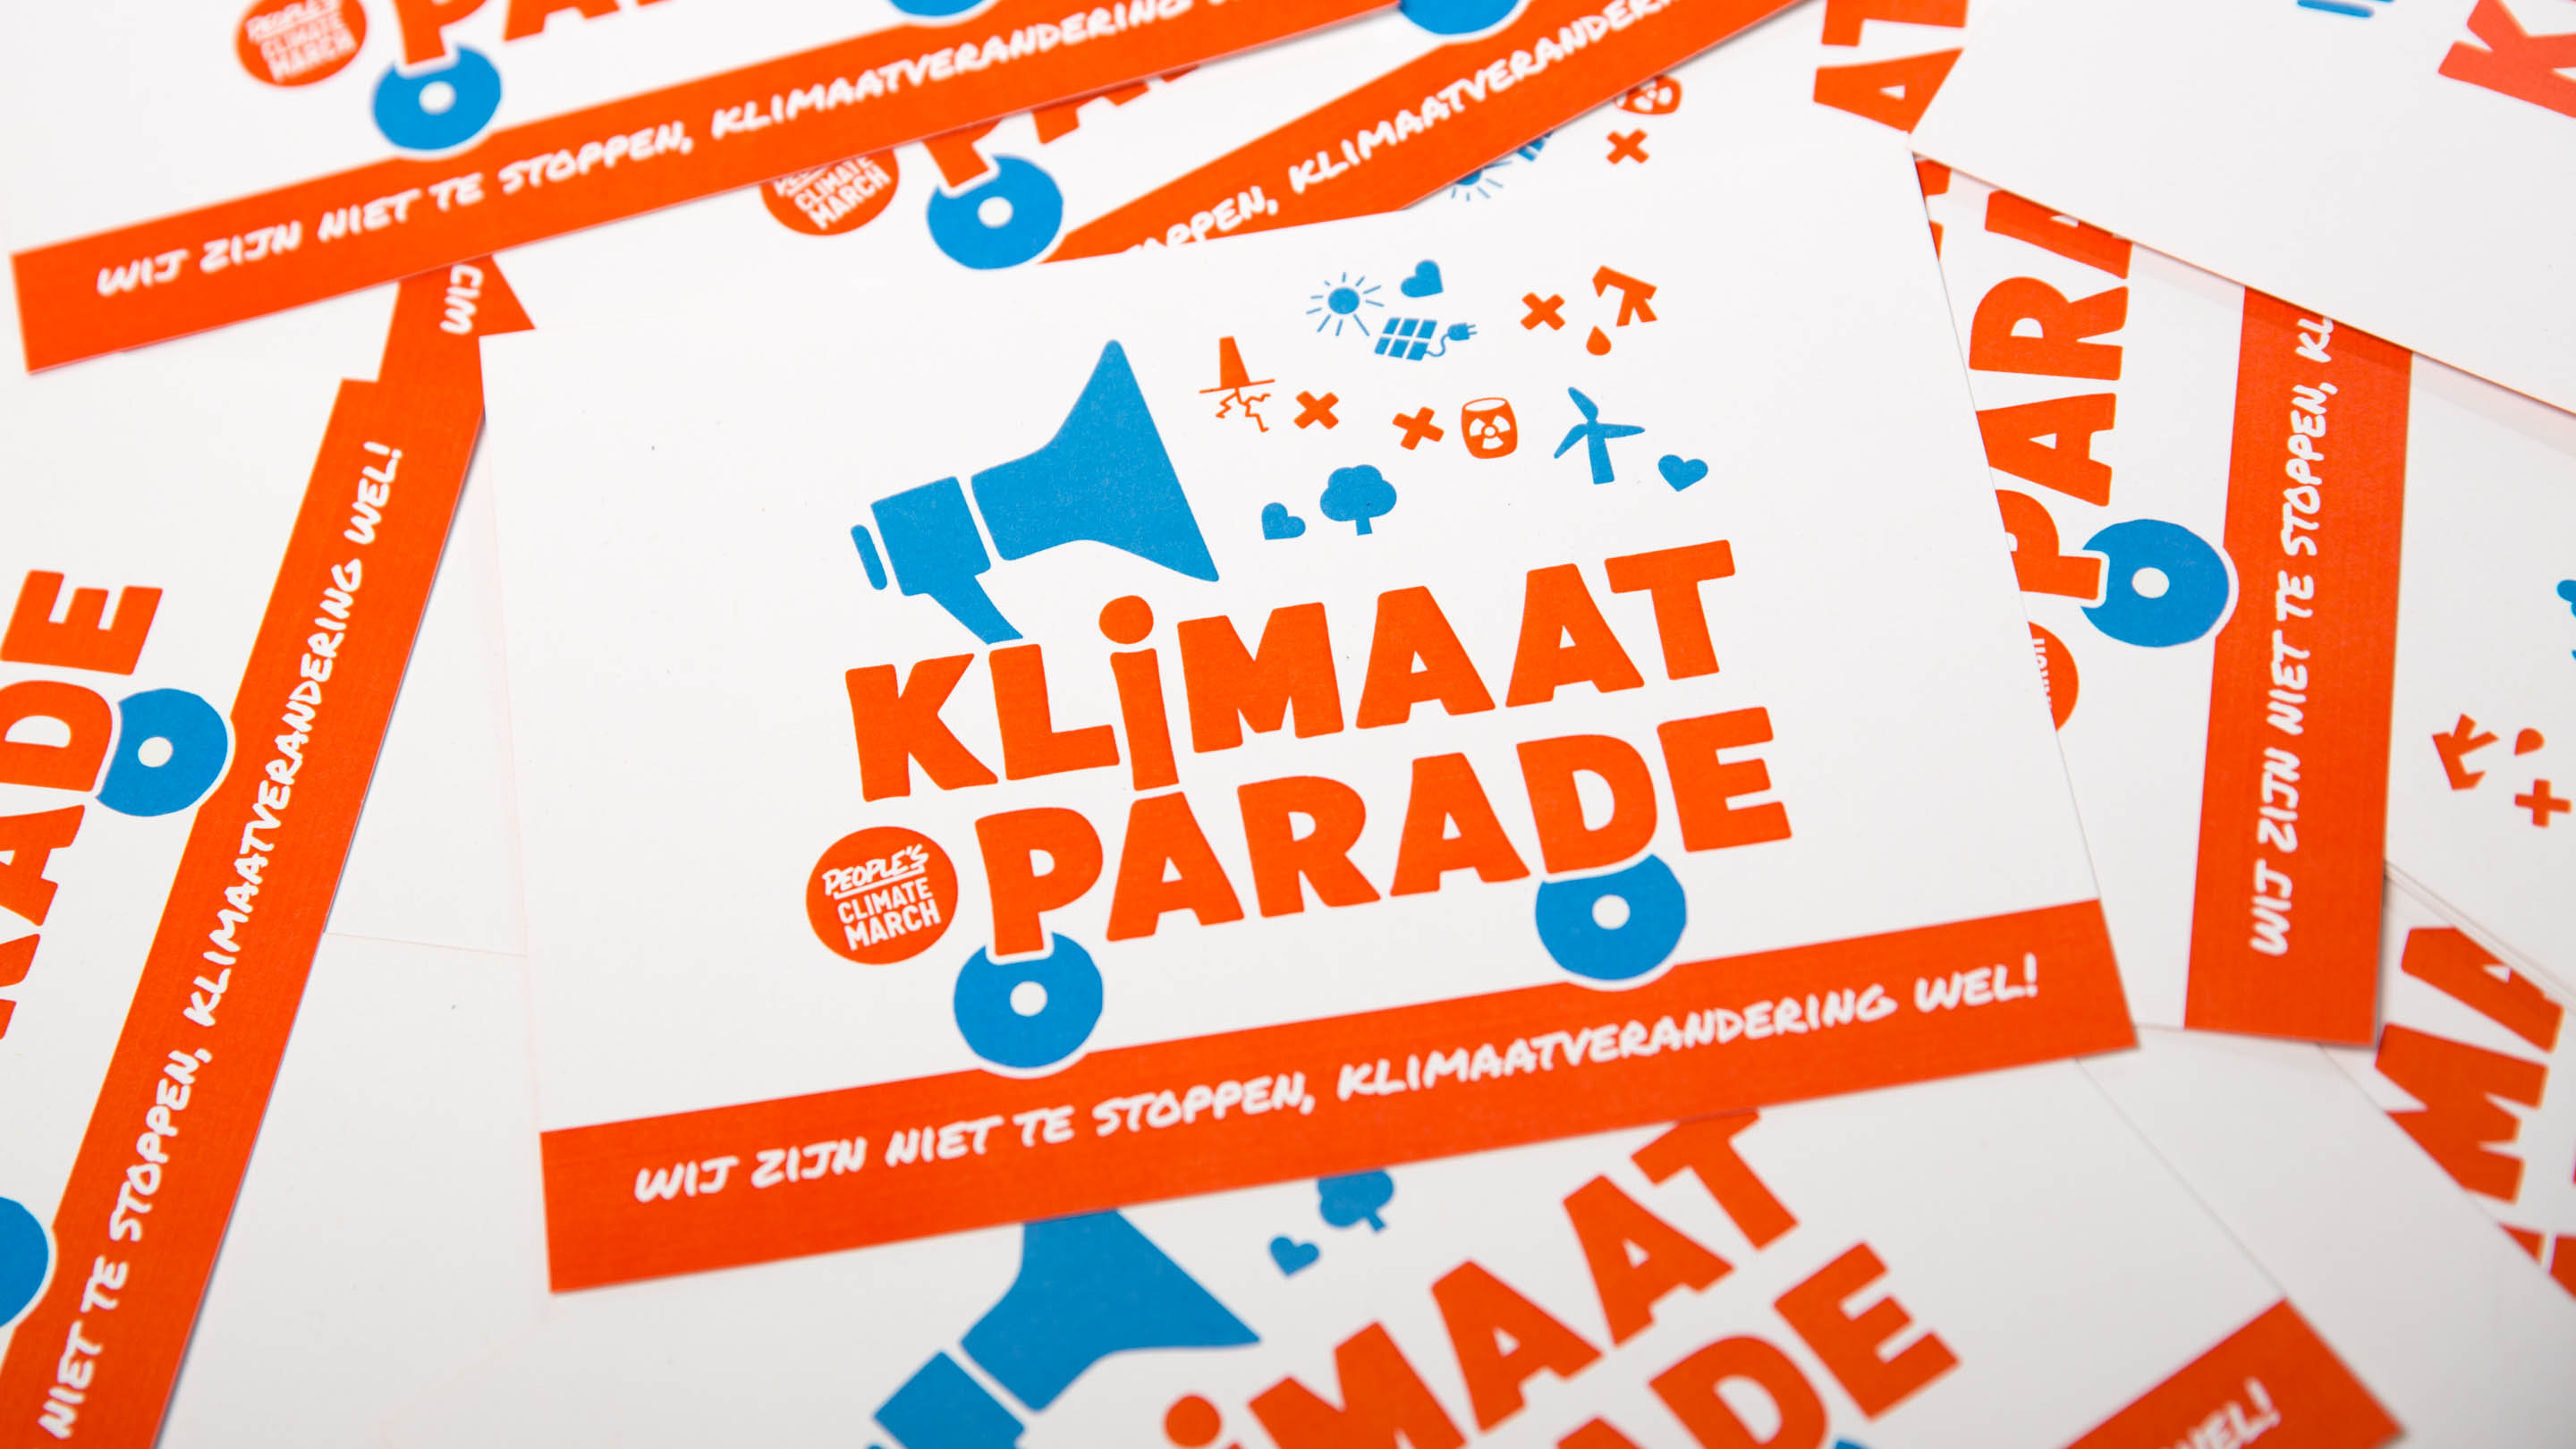 Klimaatparade-PCM-flyer-by-Act-Impact-2880px-v2